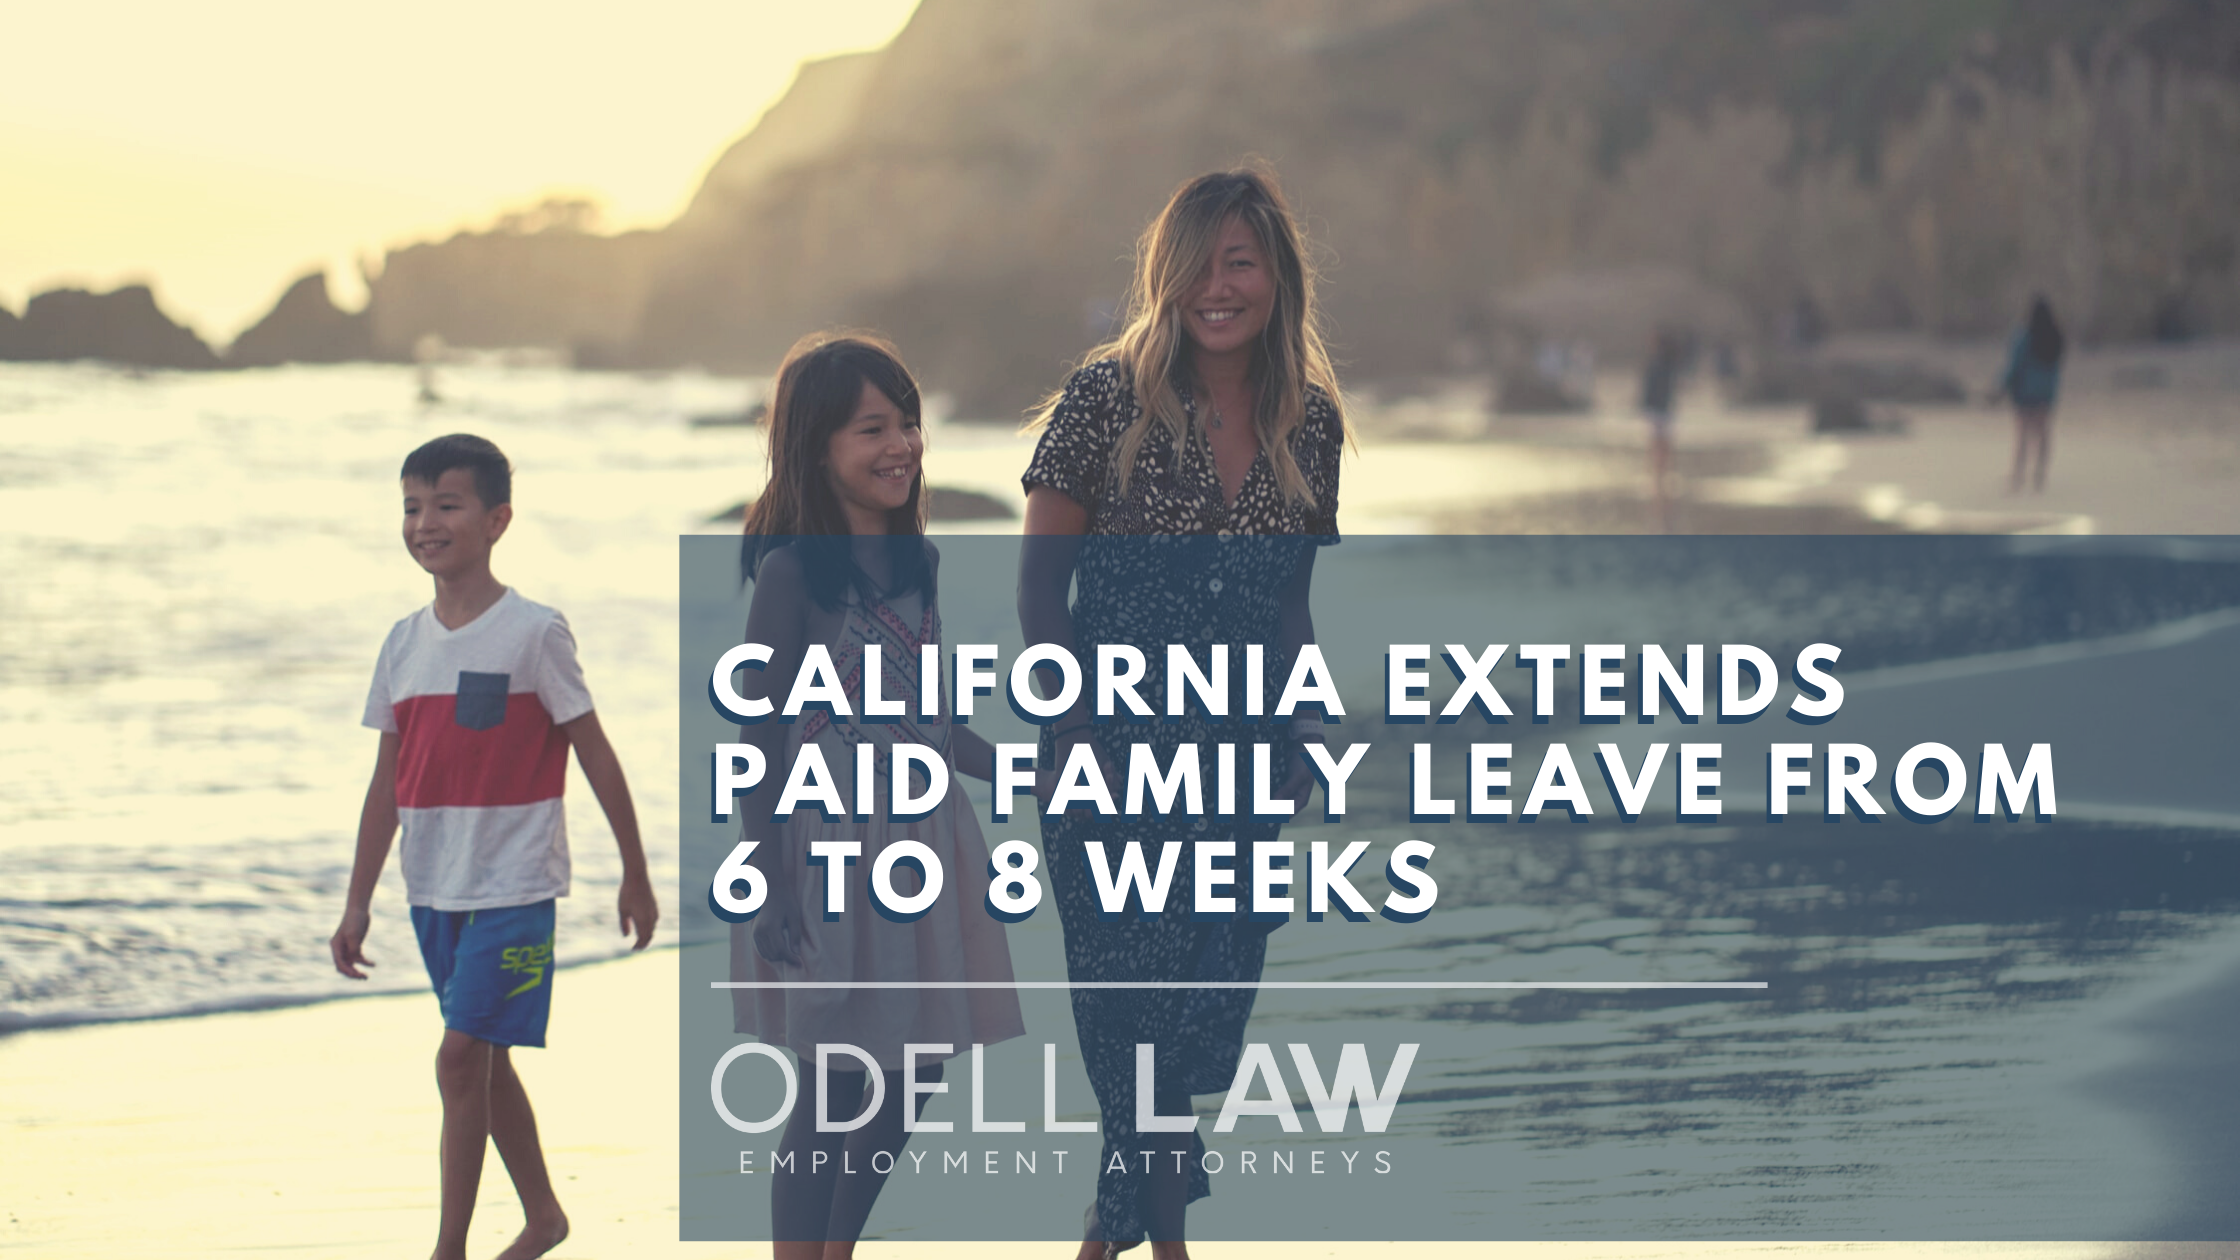 California Extends Paid Family Leave from 6 to 8 weeks